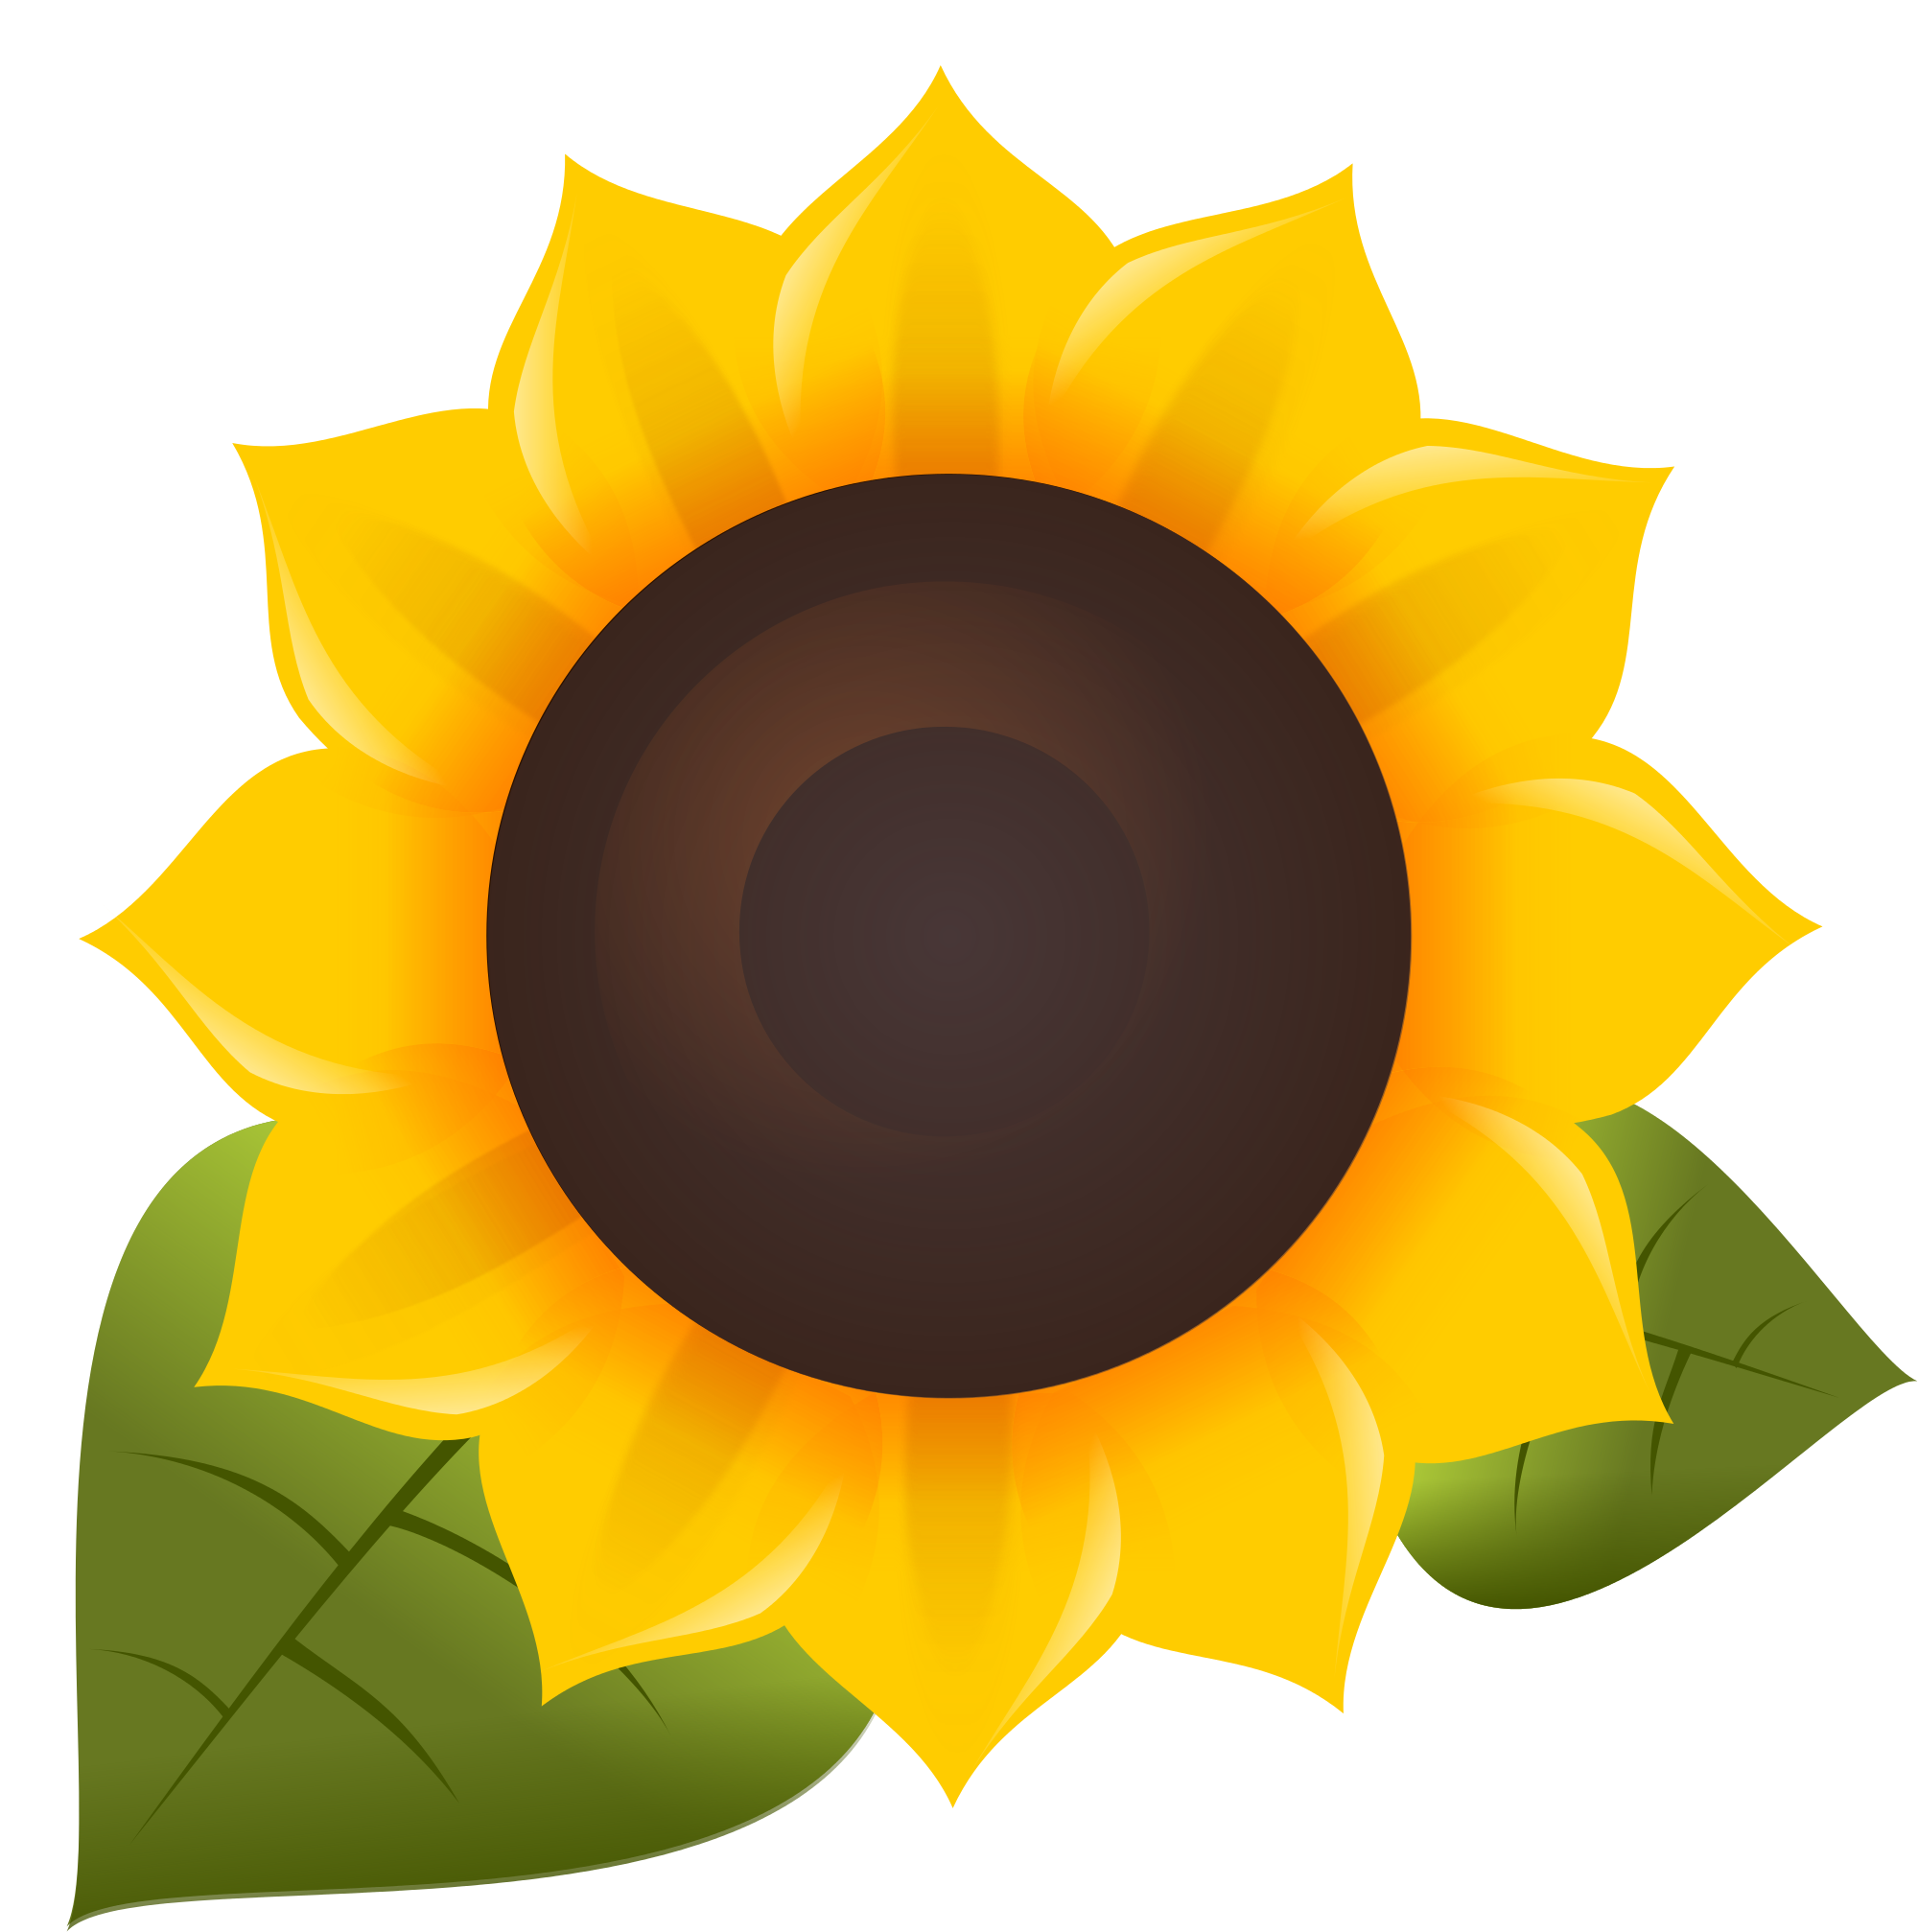 Oil Common Sunflower Software Free Download PNG HQ PNG Image